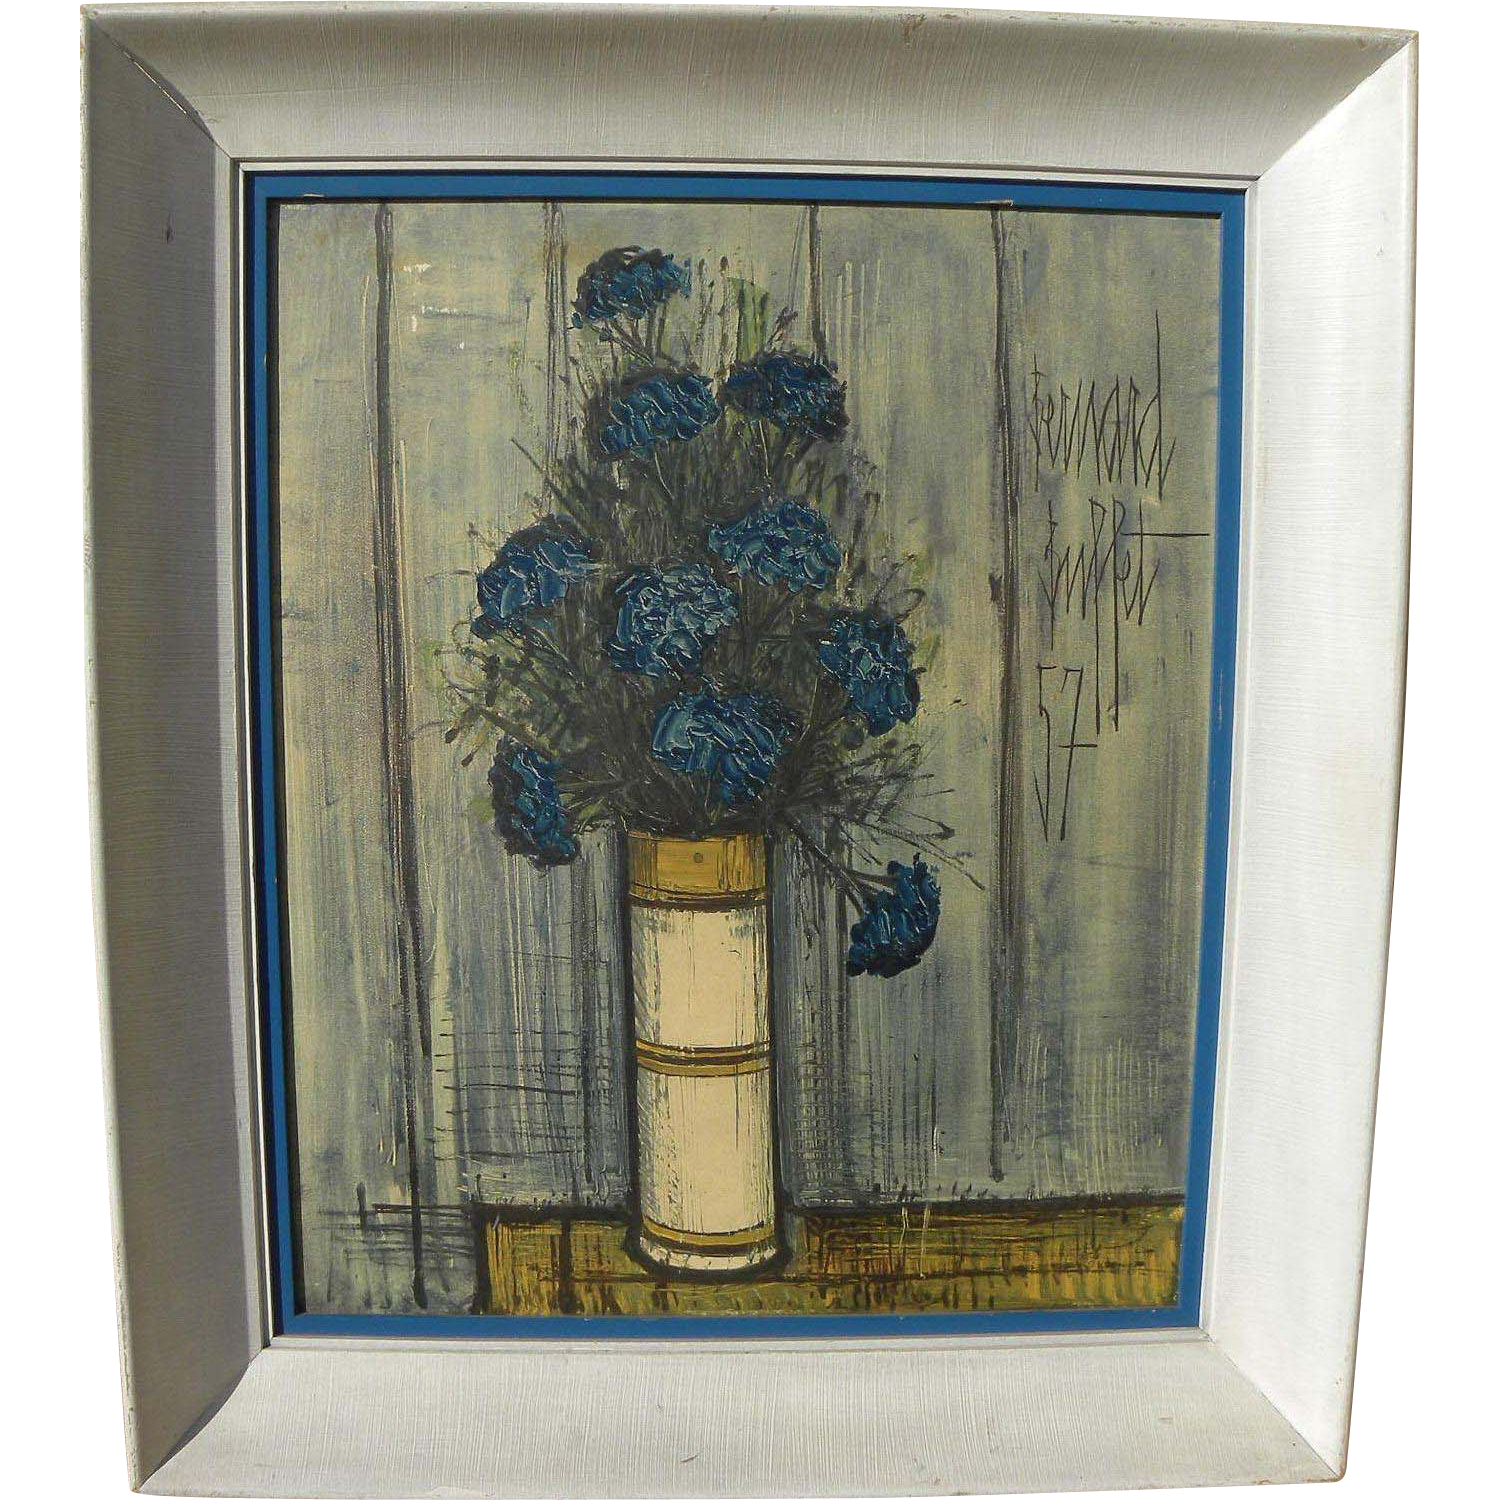 "After BERNARD BUFFET (1928-1999) framed vintage mid century color photographic print ""Blue Bouquet"""